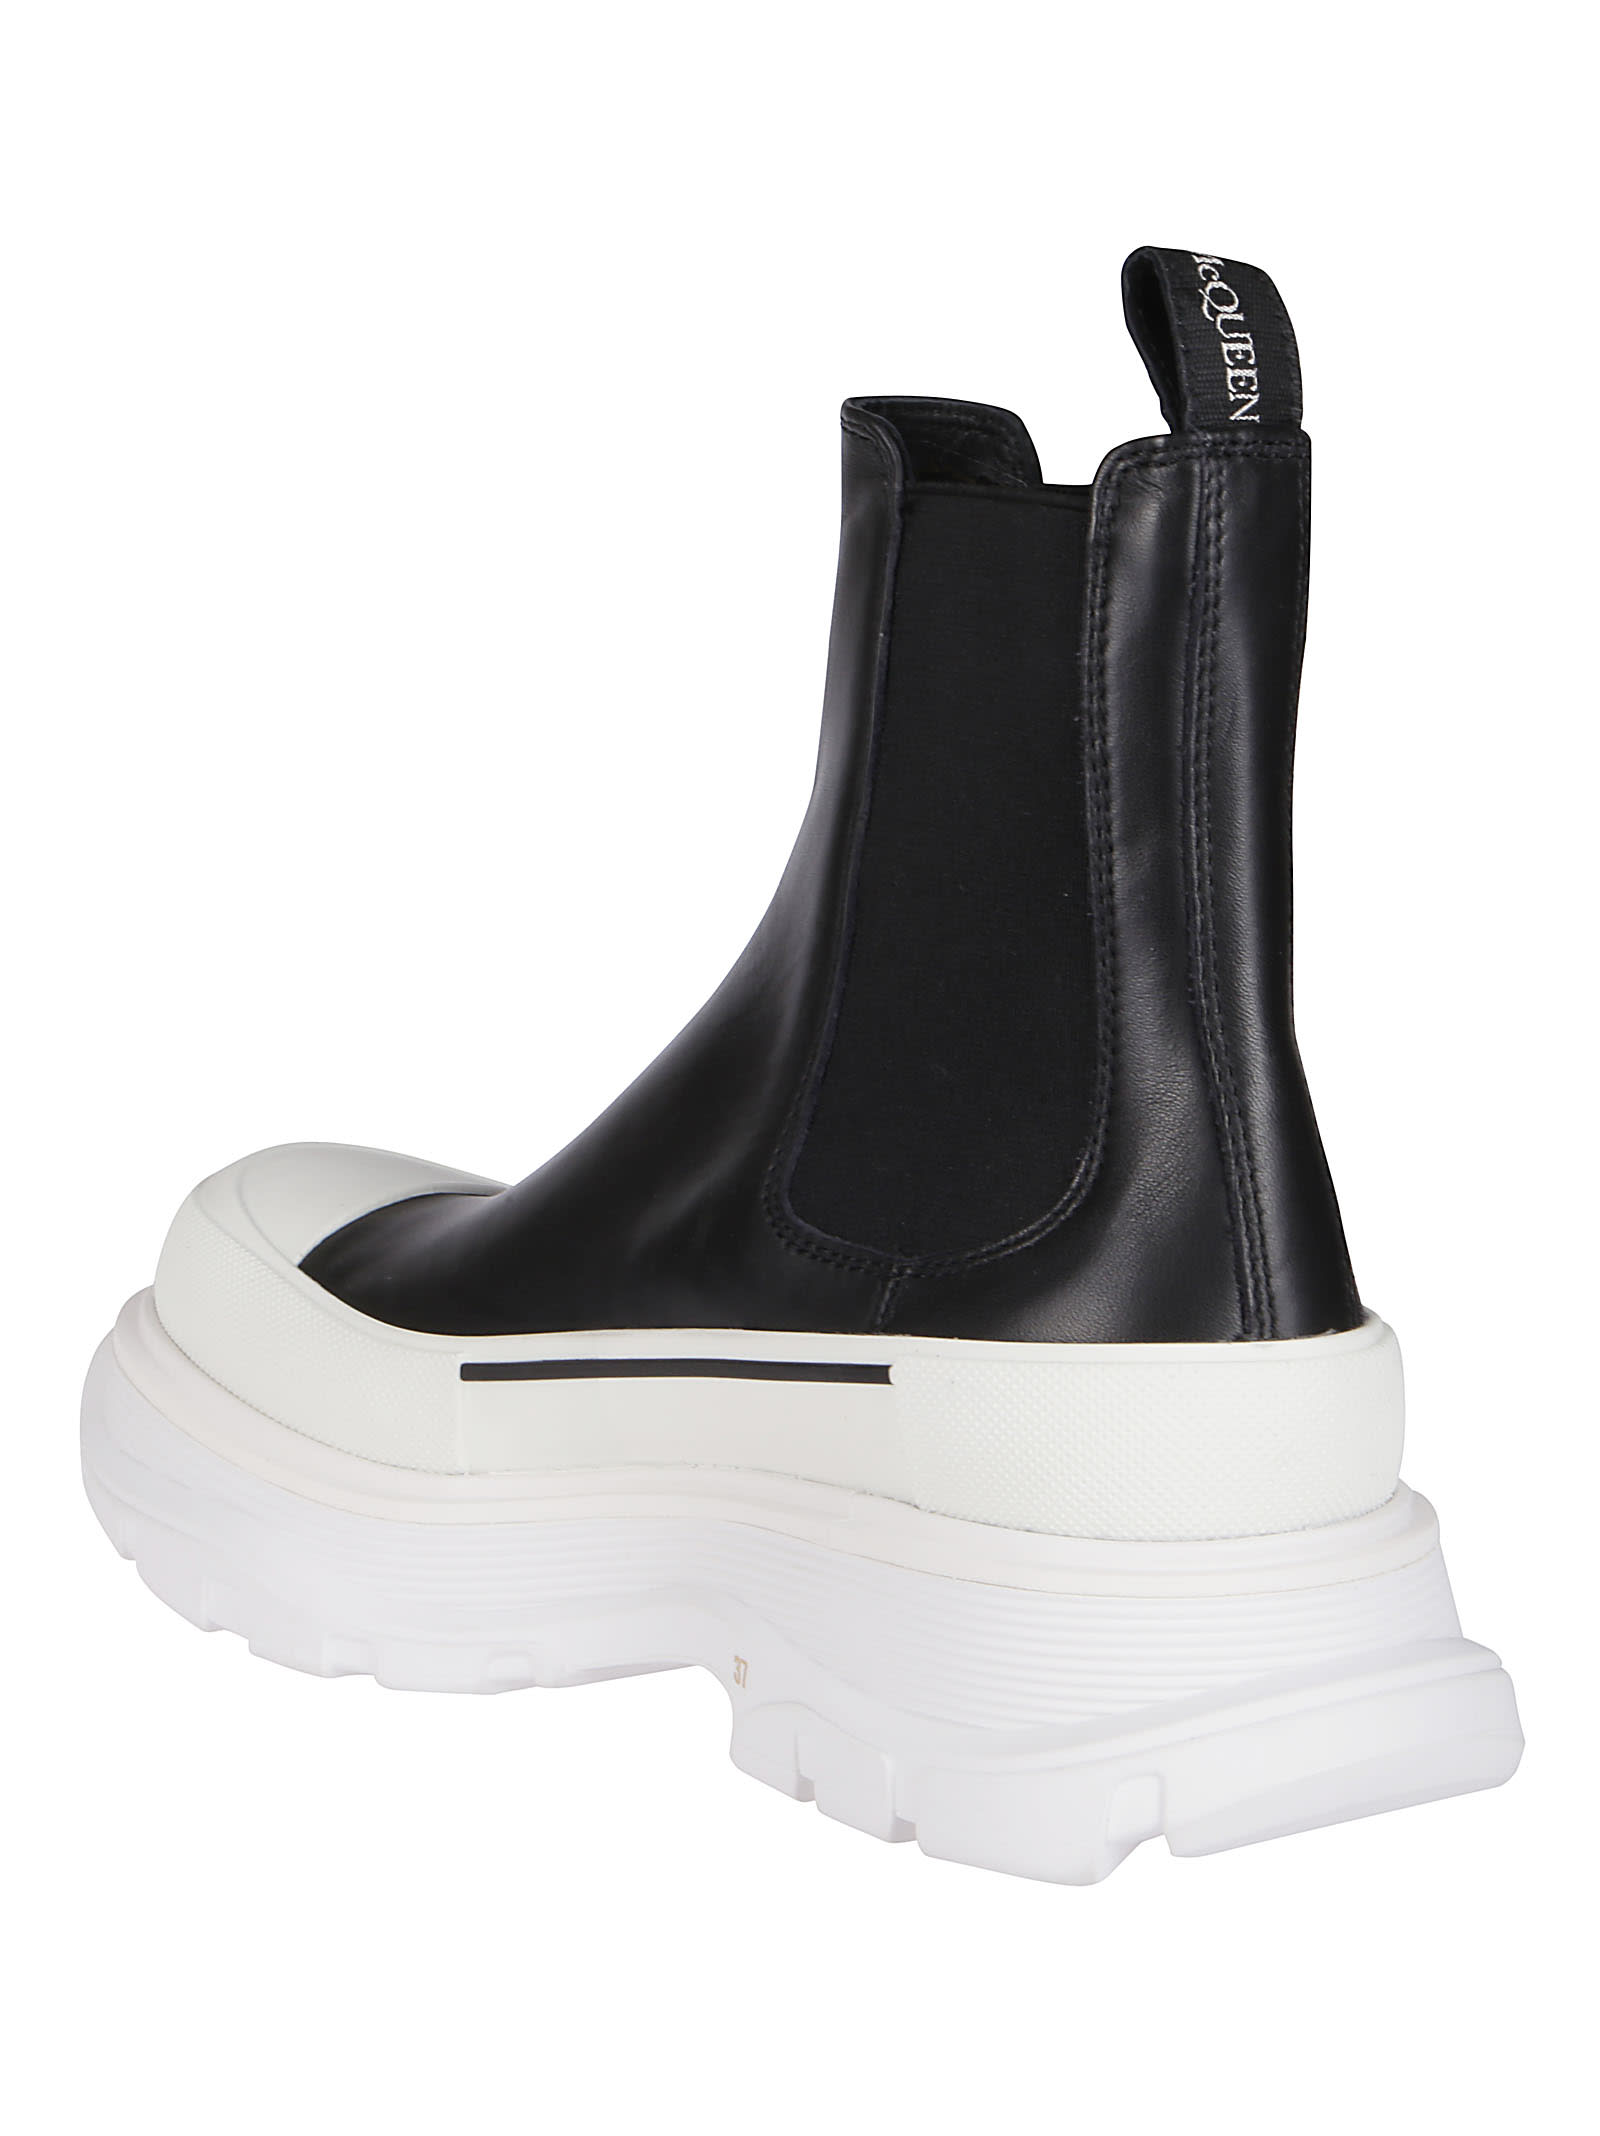 Alexander Mcqueen BLACK AND WHITE LEATHER TREAD CHELSEA BOOTS